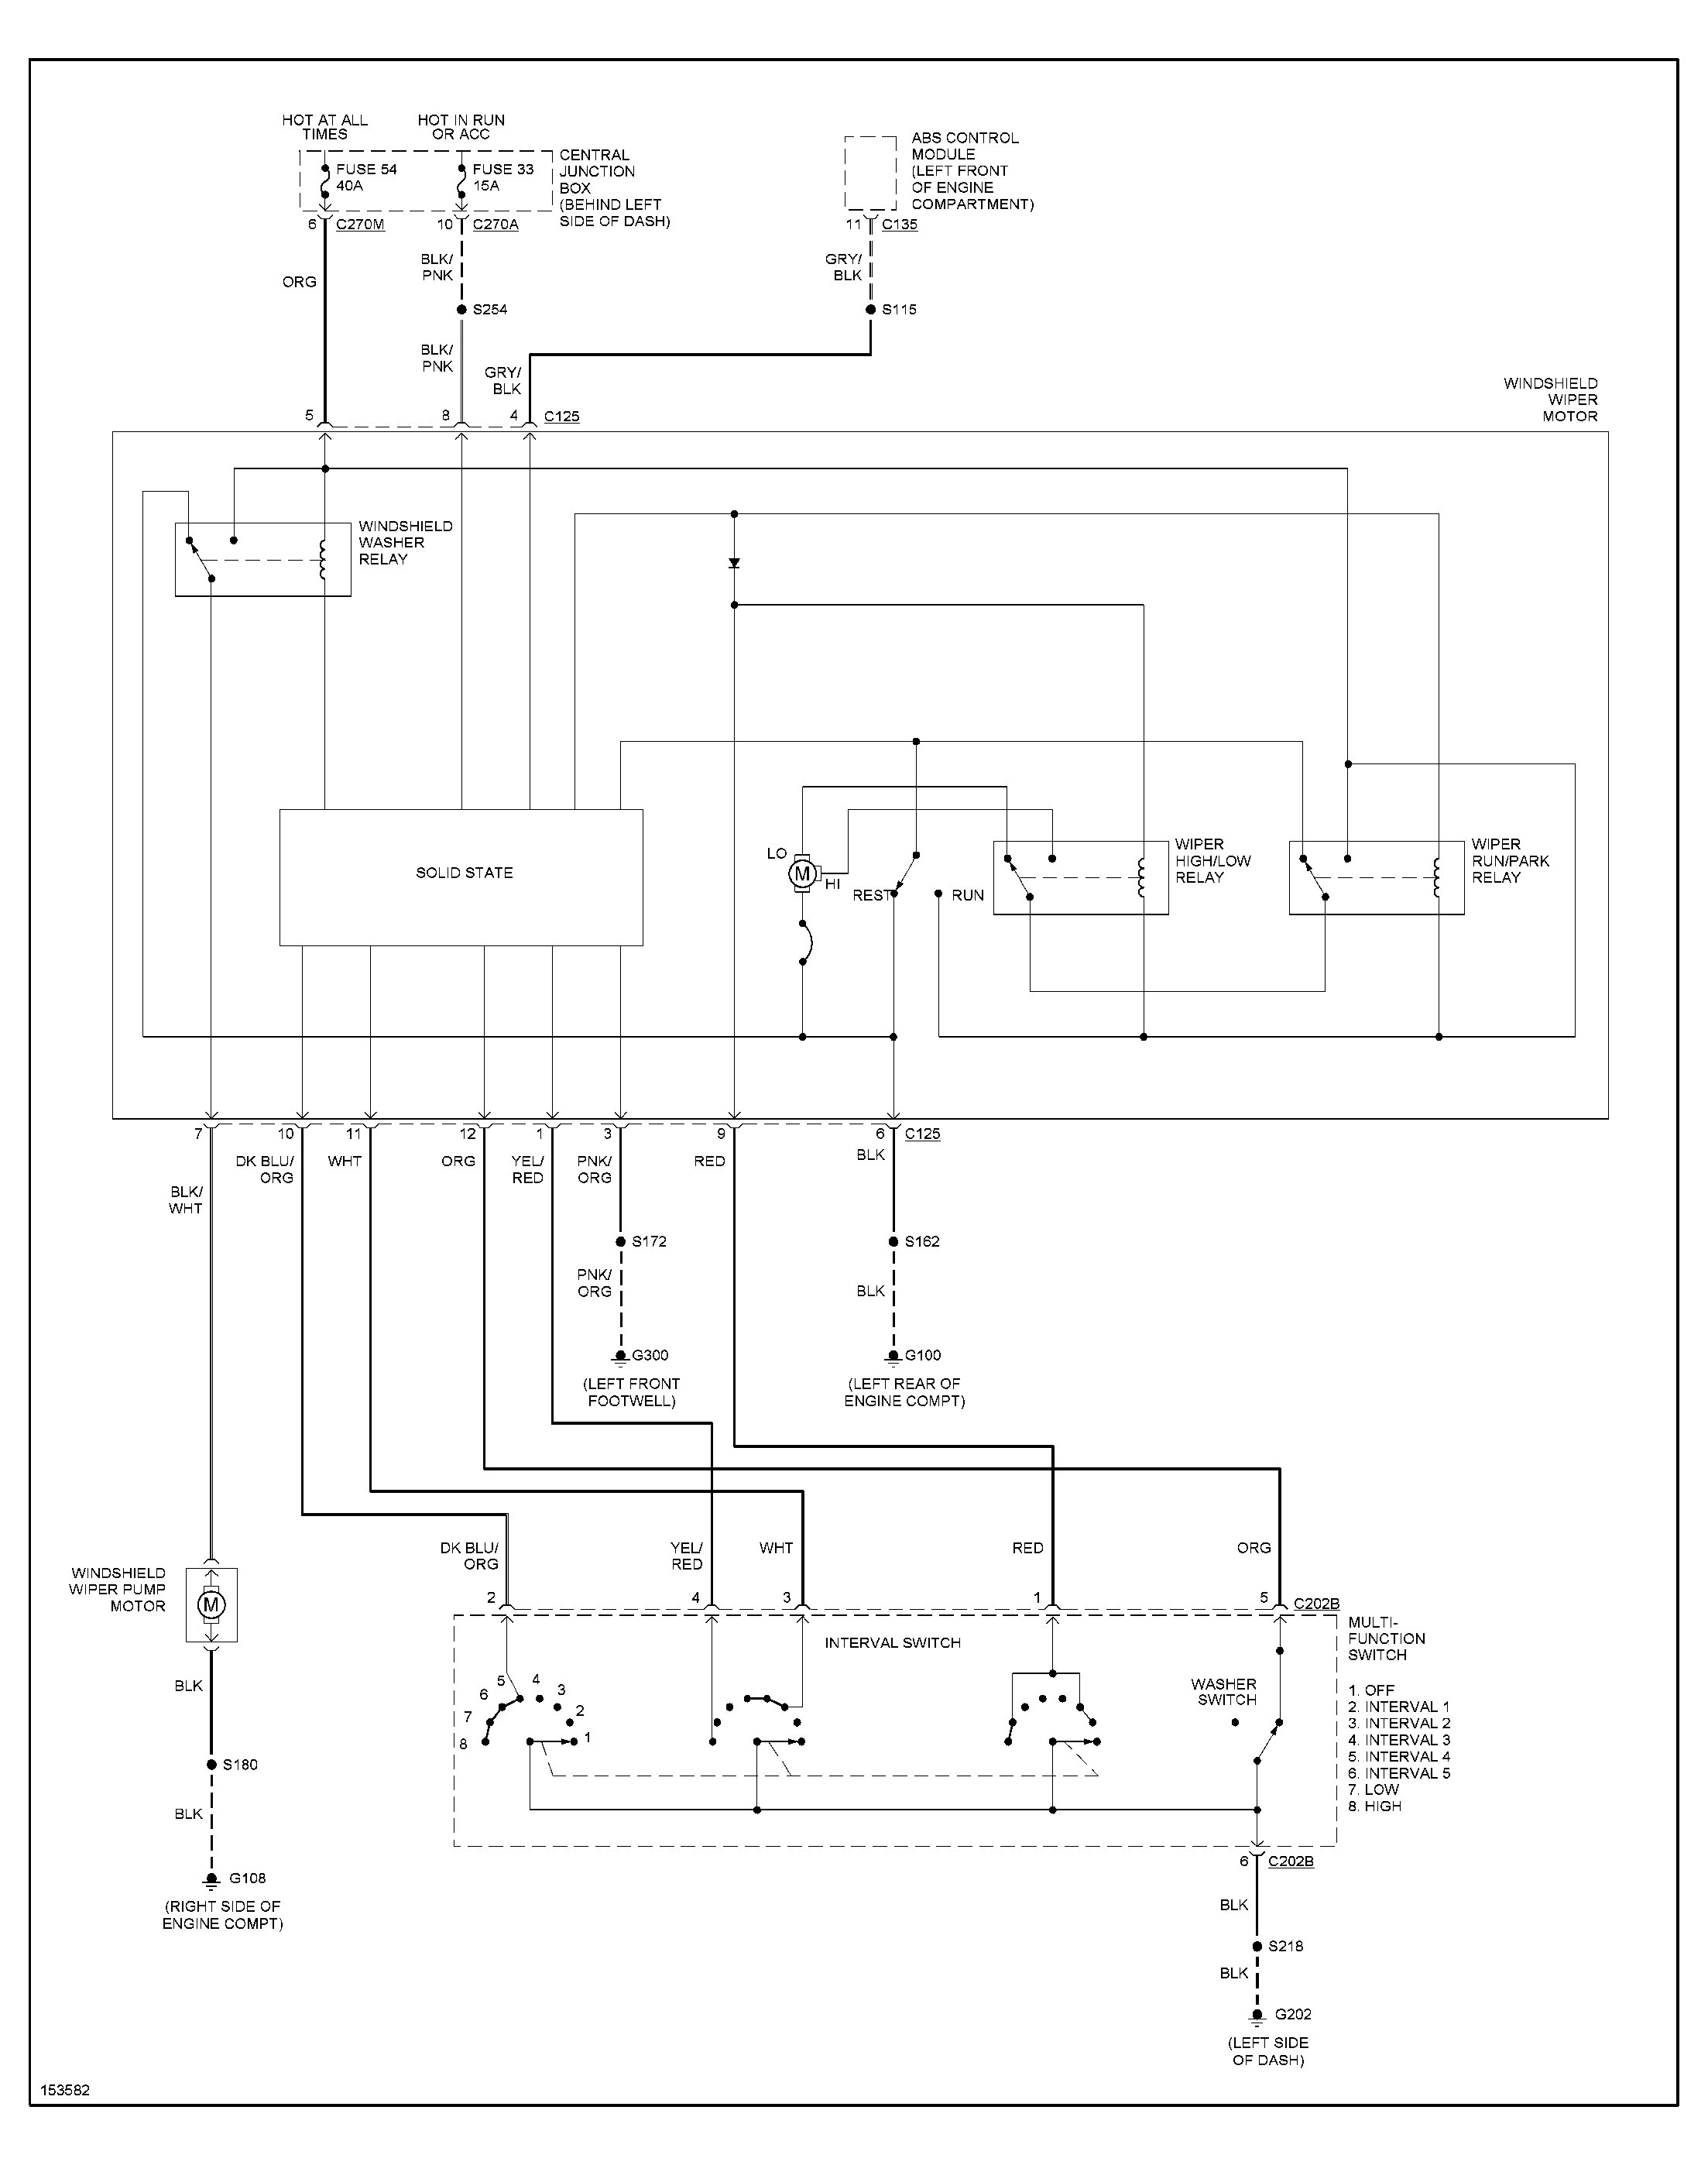 2002 ford focus se engine diagram 2007 ford focus fuse diagram rh  detoxicrecenze com 2002 Ford Focus Engine Diagram 2002 Ford Focus Engine  Diagram